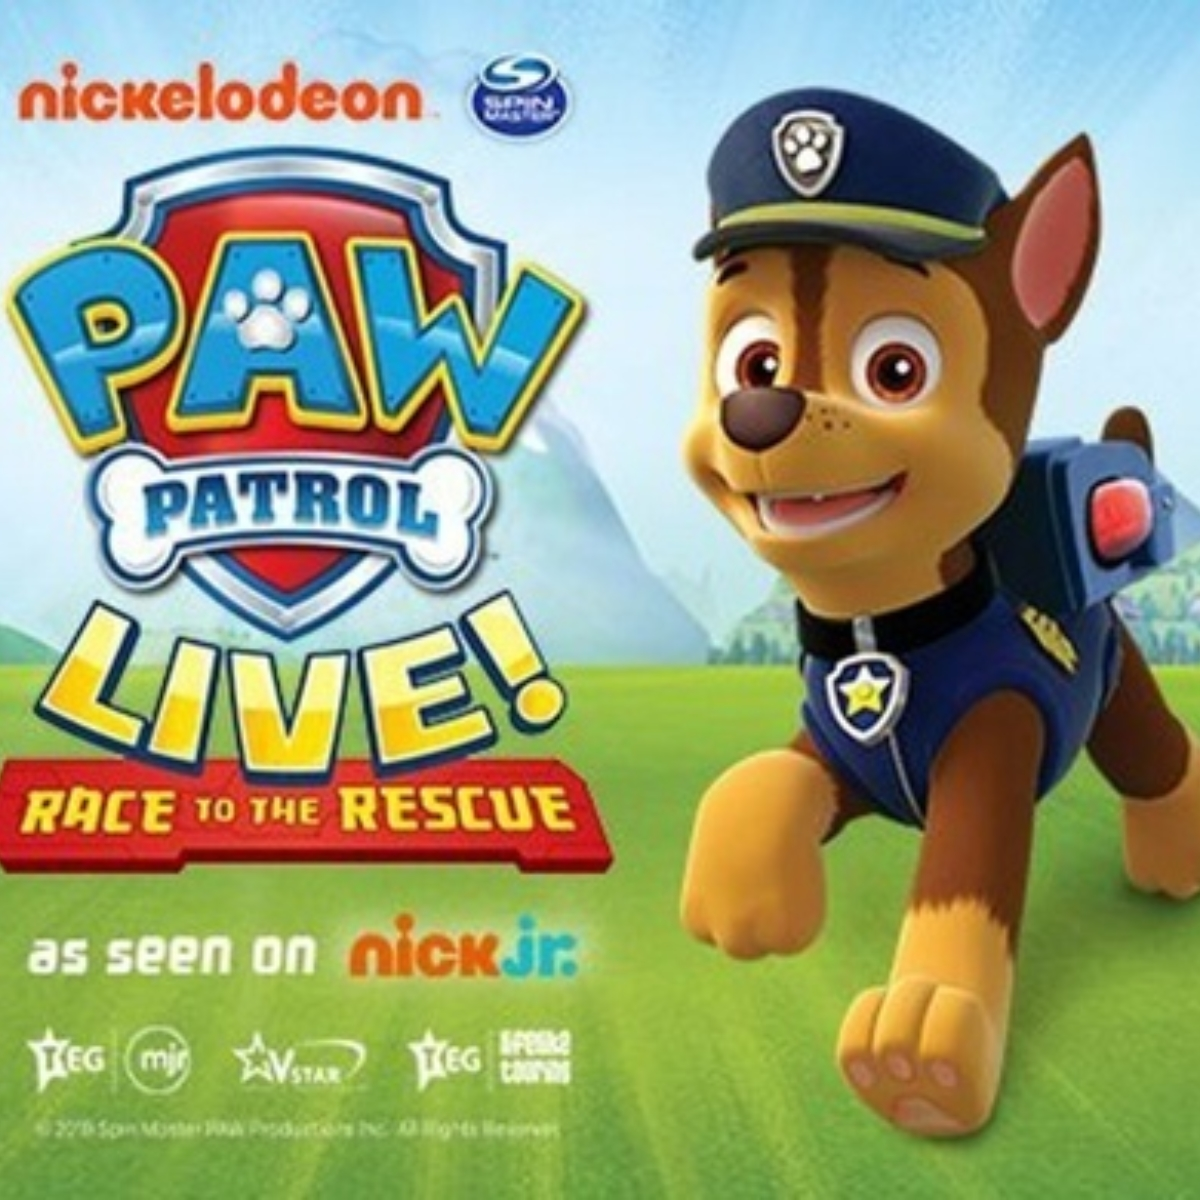 PAW PATROL LIVE! - Race to the Rescue (London Wembley) Images